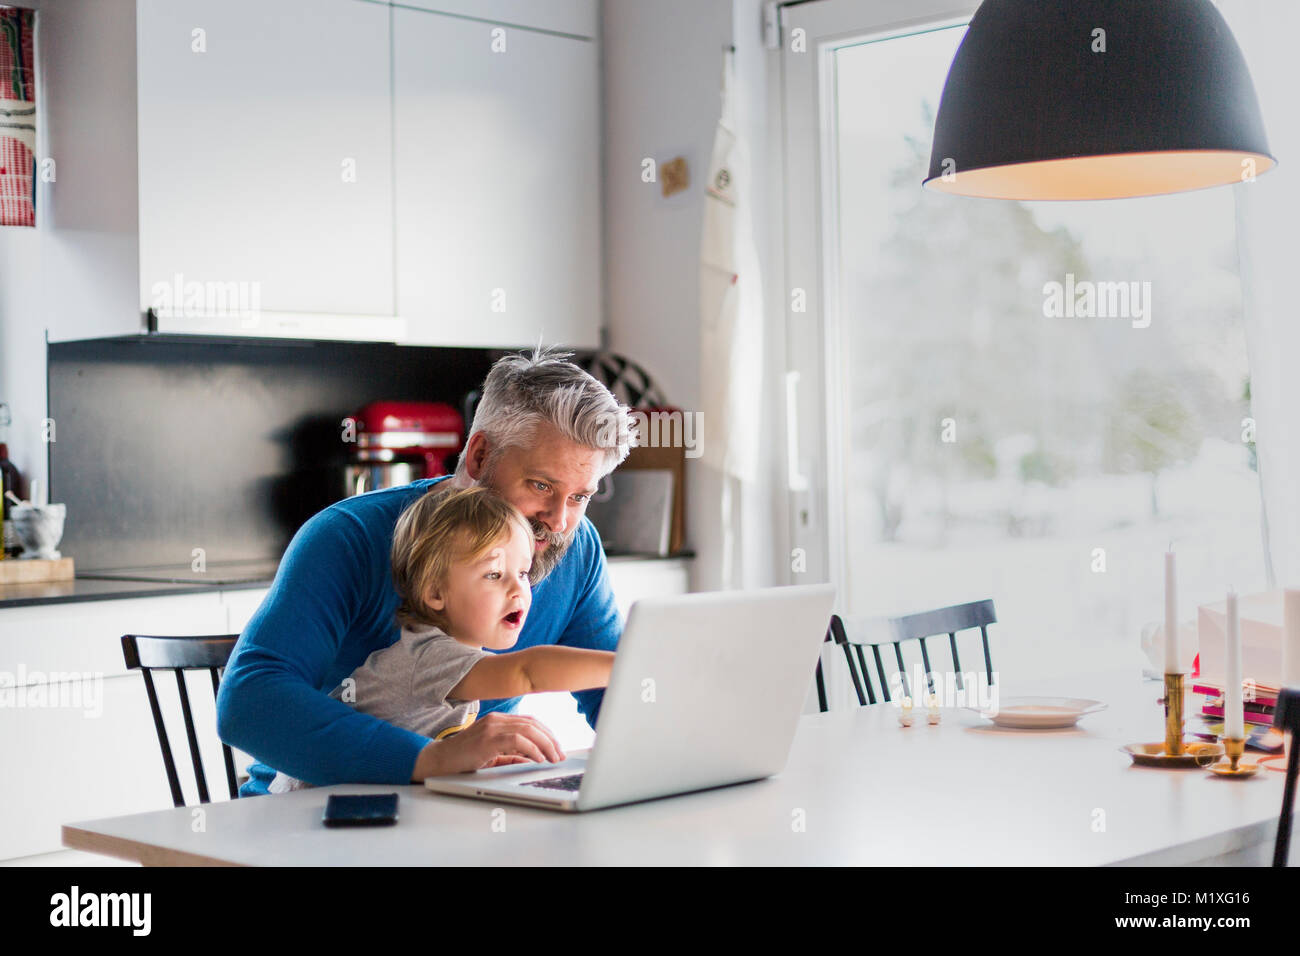 Man and child playing with laptop in kitchen - Stock Image